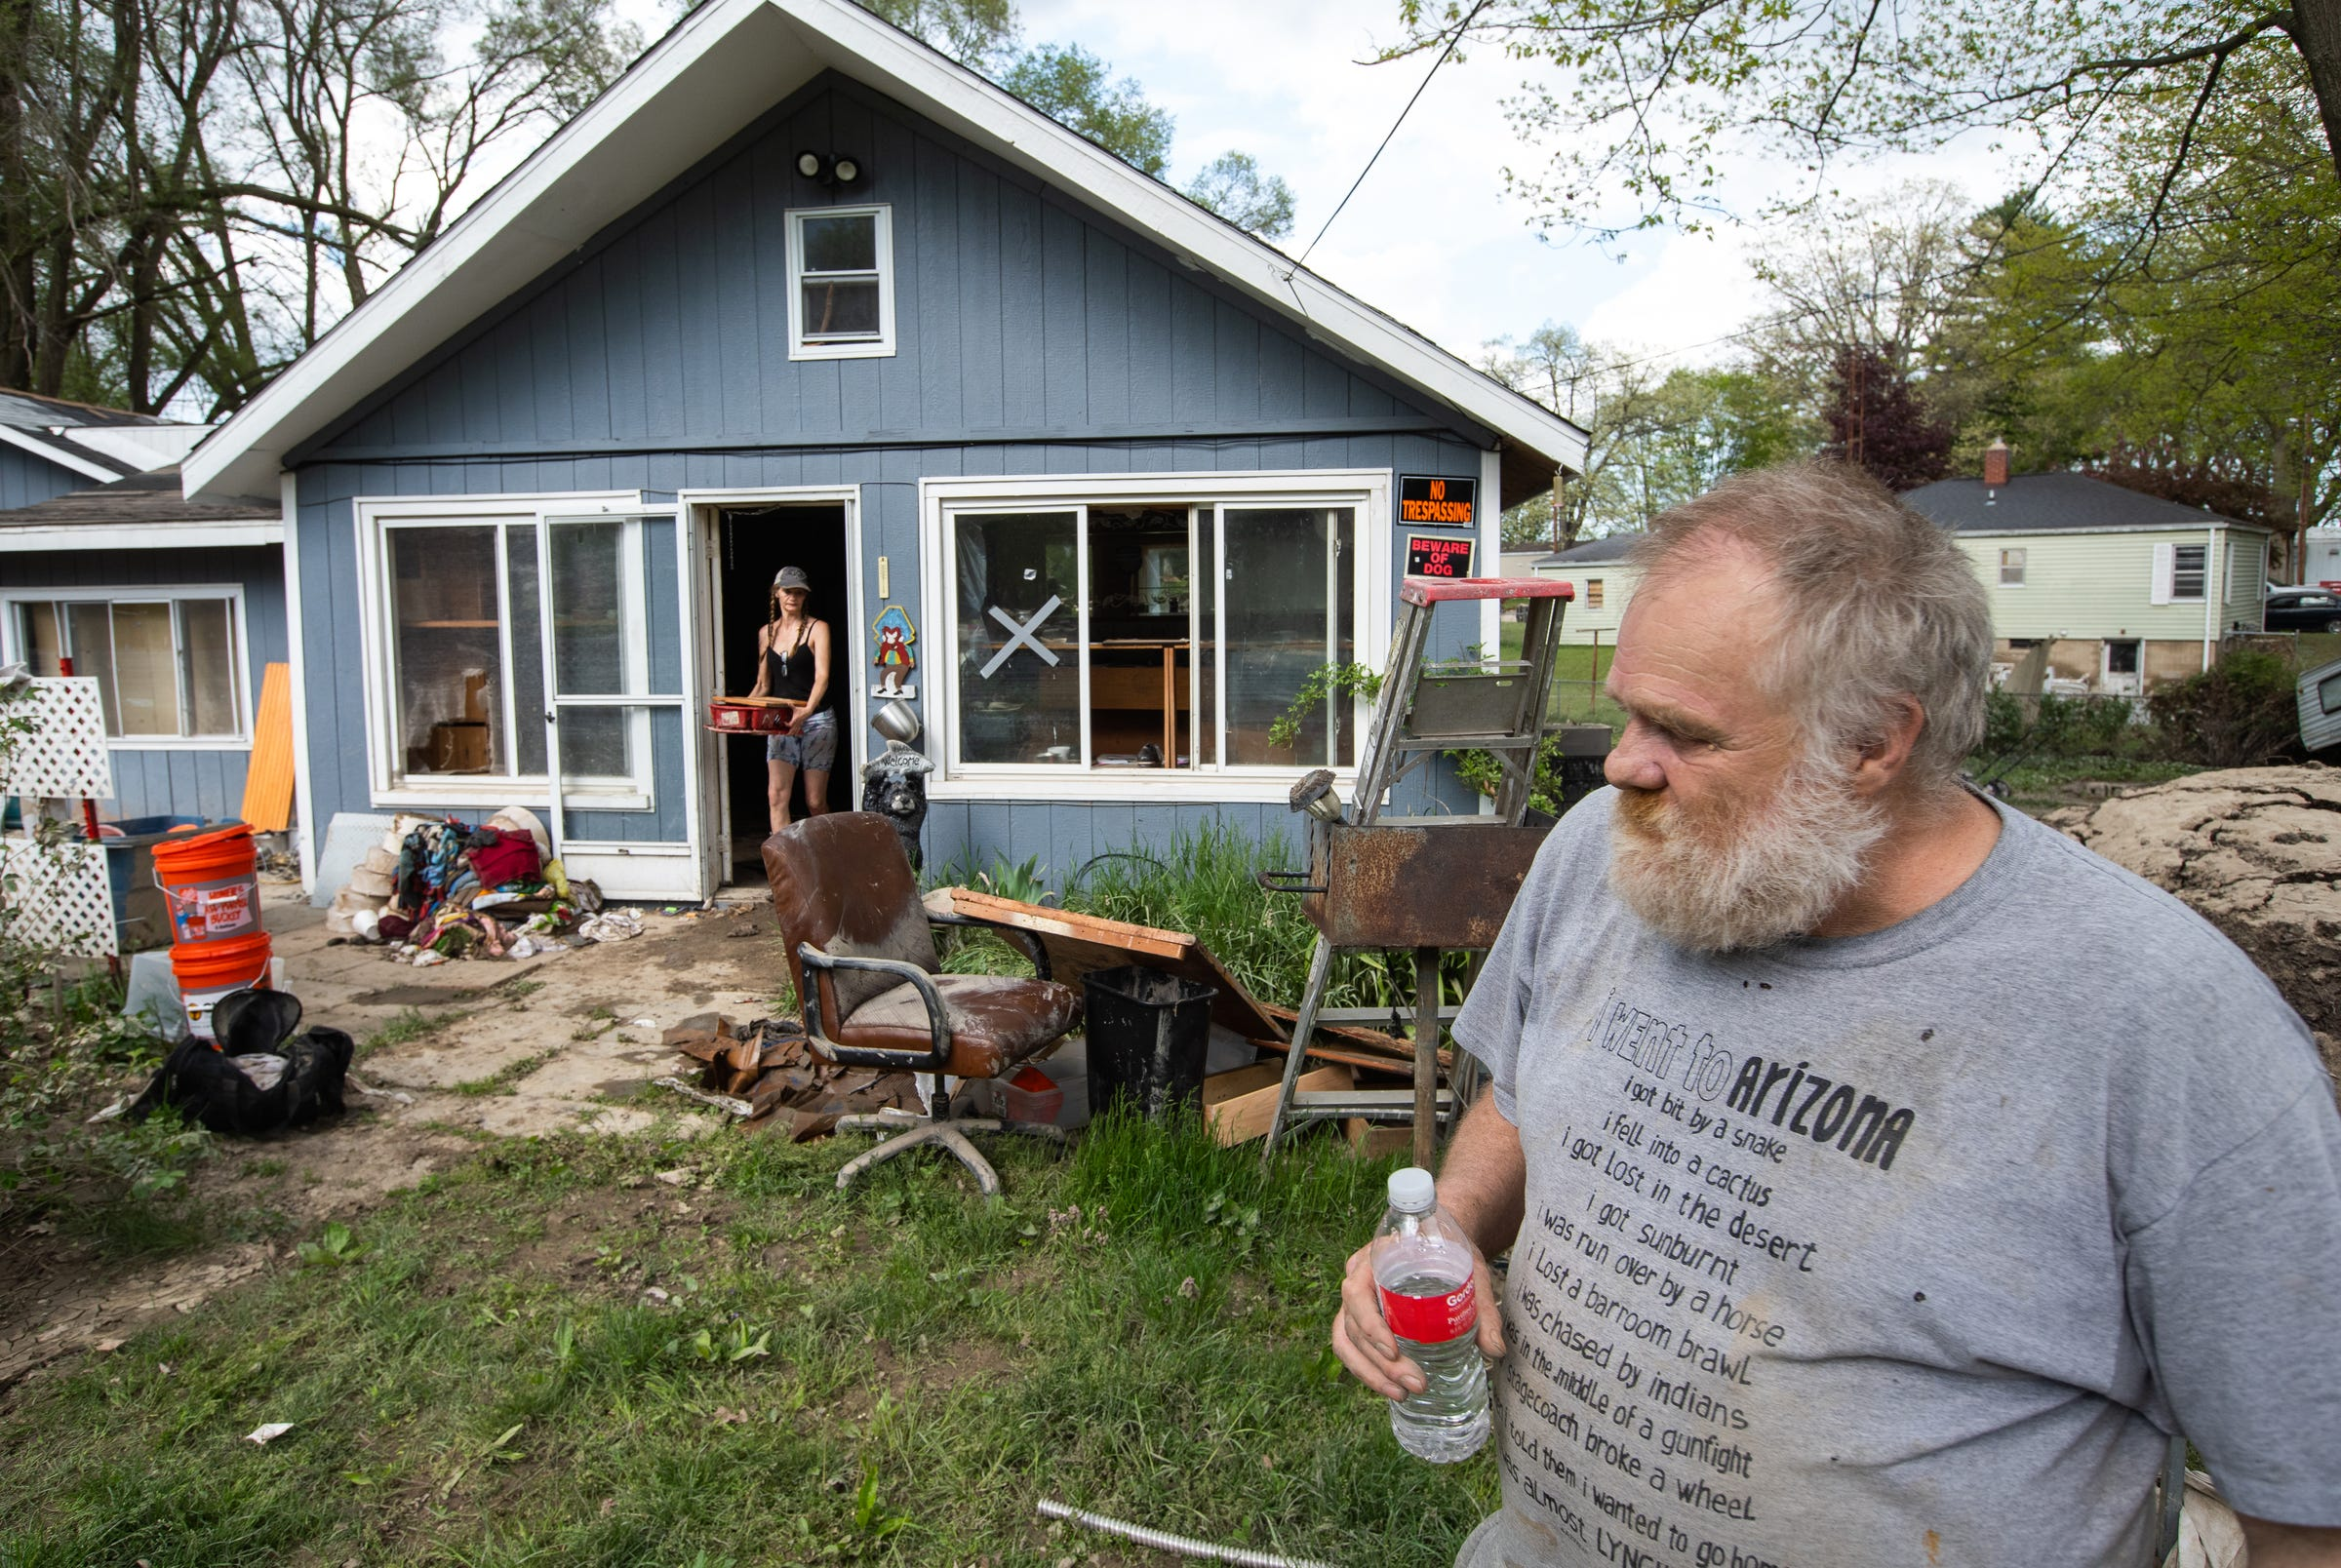 Kenneth Helm walks through his yard in Sanford on Friday, May 22, 2020, as his sister Kim Helm of Standish helps him clear out his home, which was damaged by flood waters three days earlier.